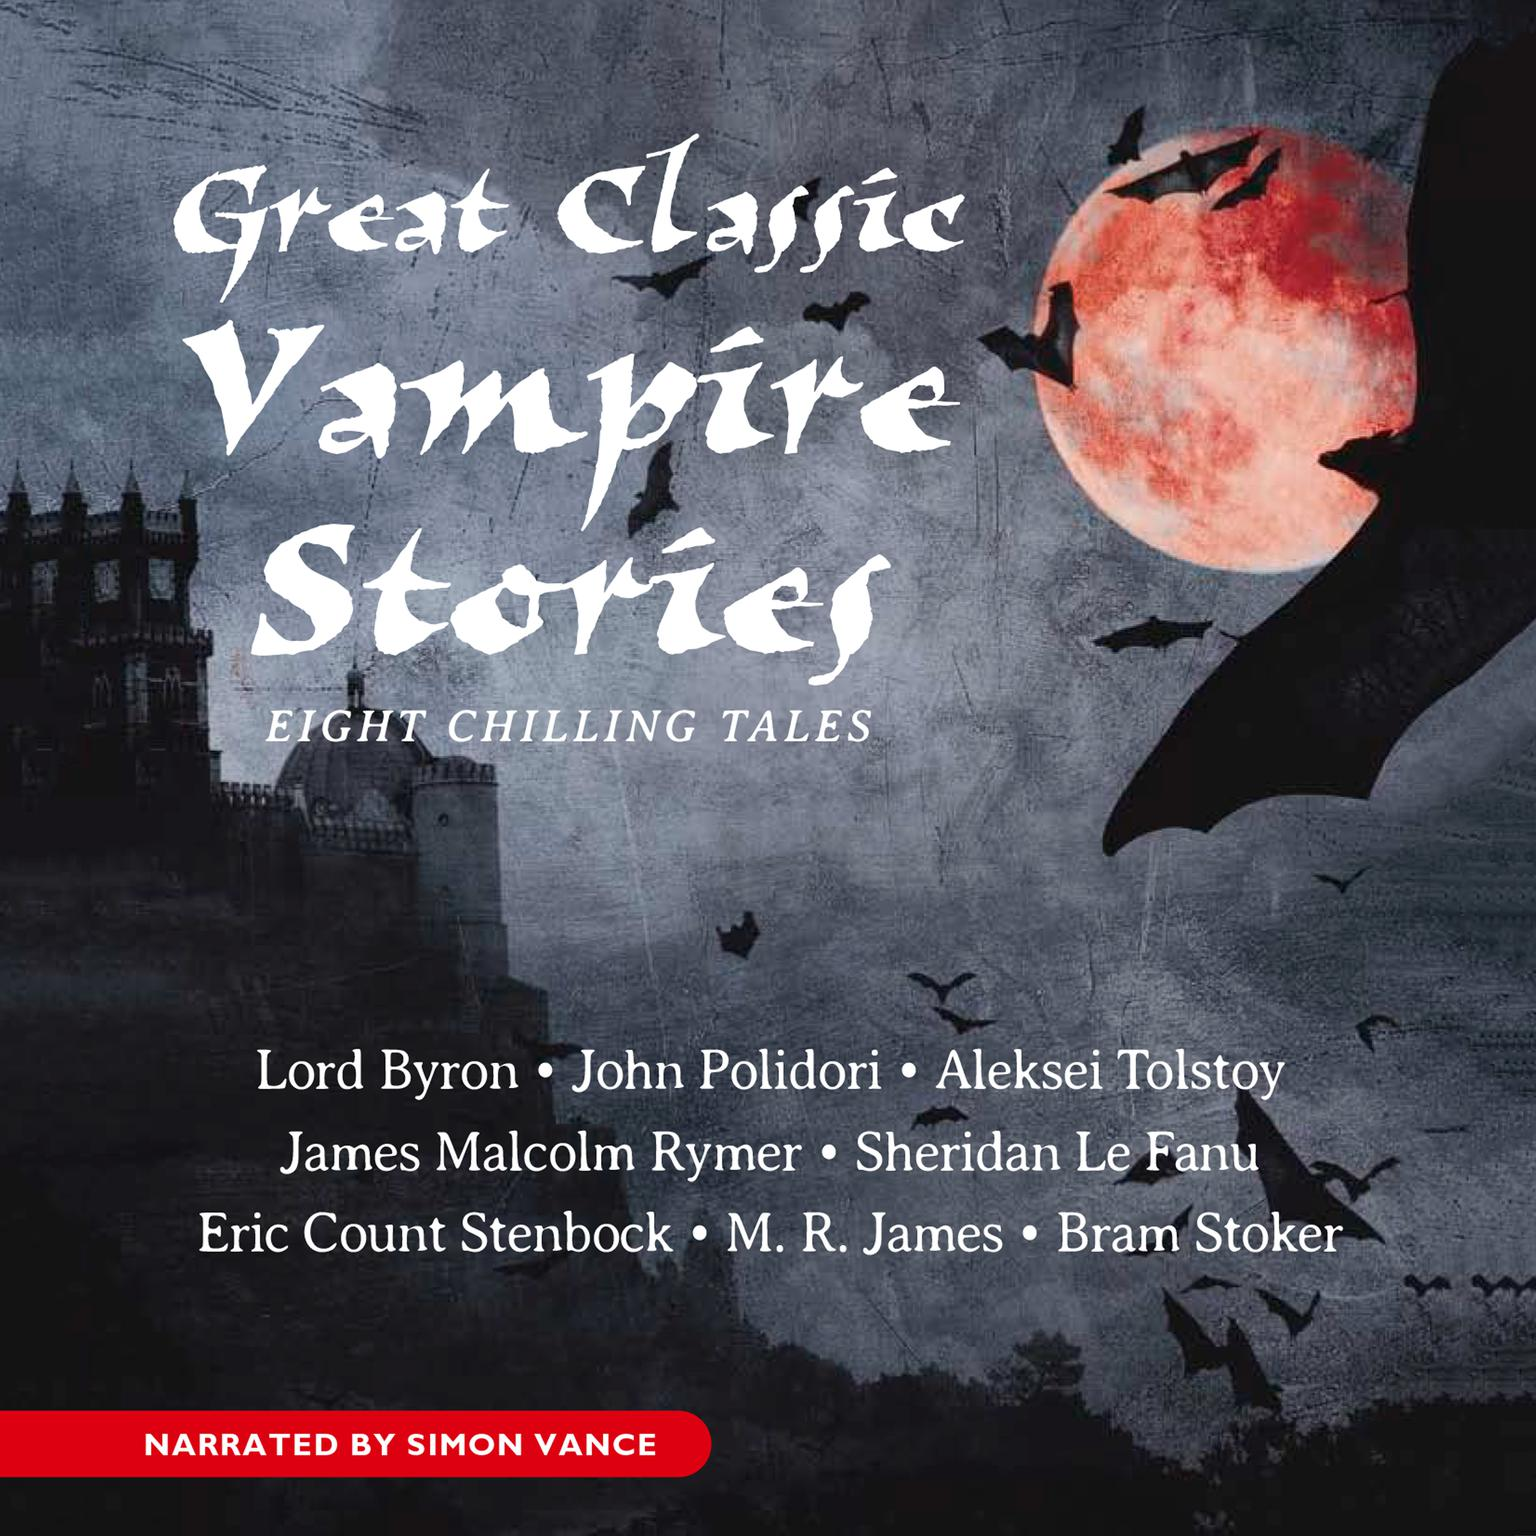 Printable Great Classic Vampire Stories: Seven Chilling Tales Audiobook Cover Art